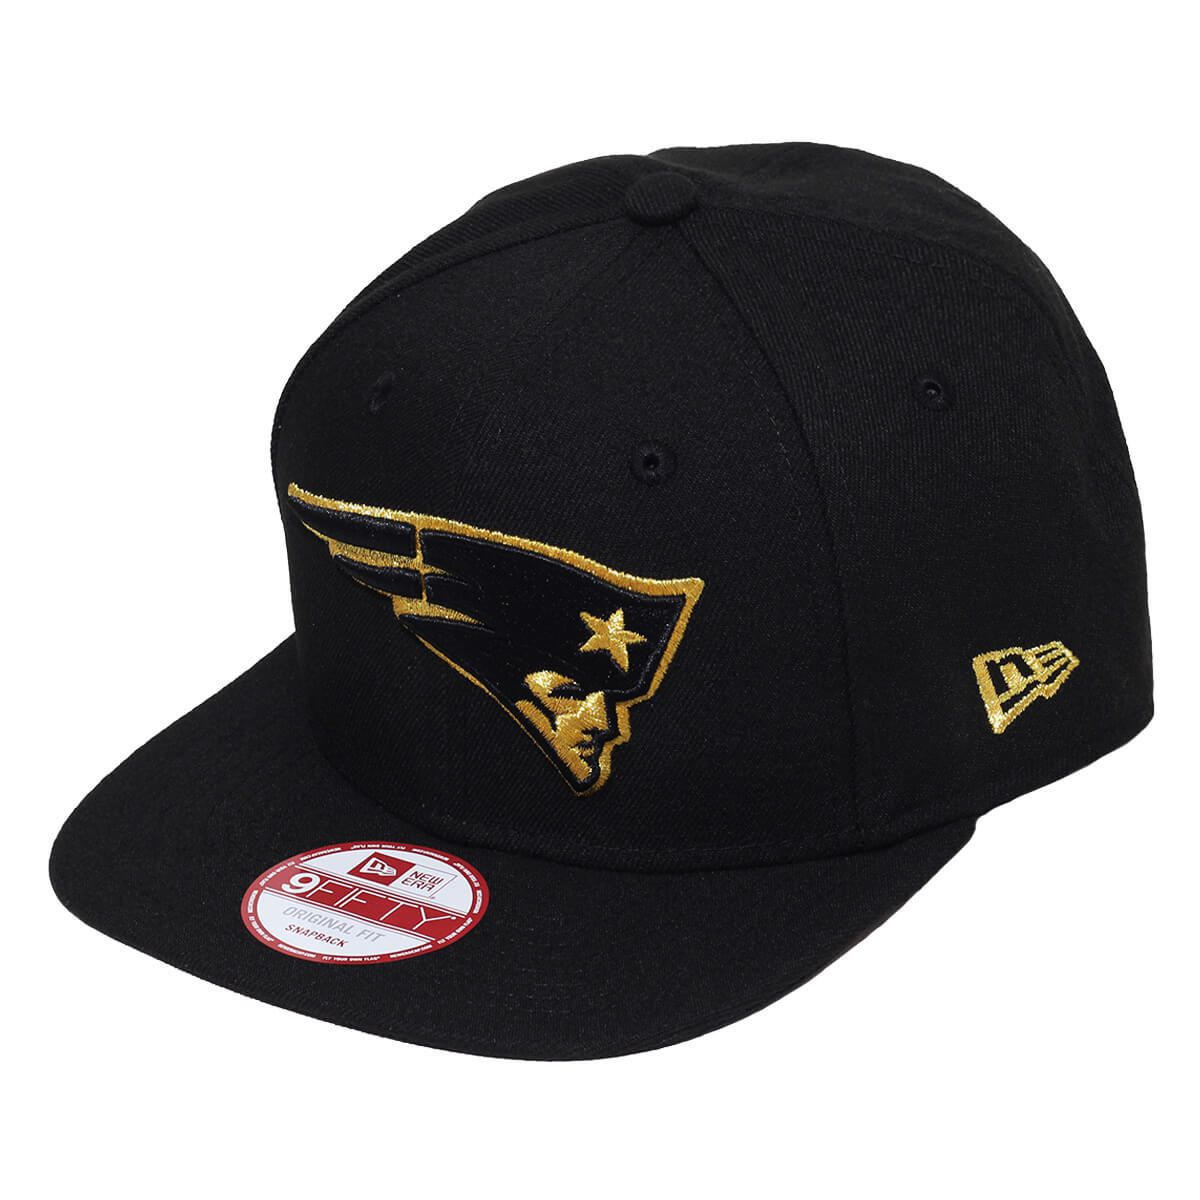 Boné New Era Aba Reta 950 SN NFL Patriots OF Gold Preto